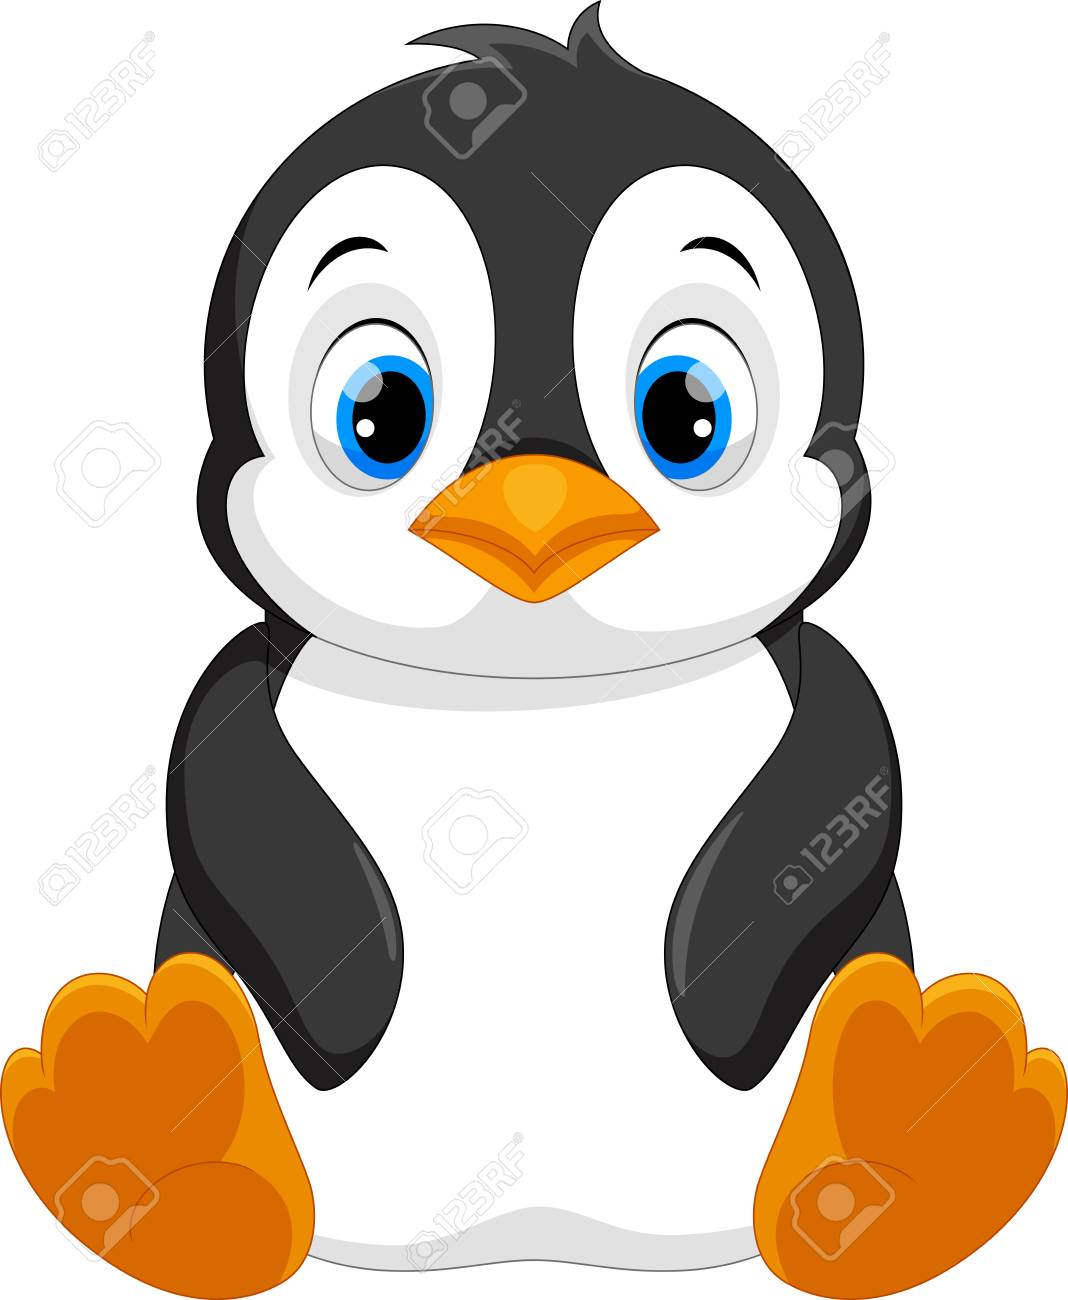 Cute Baby Penguin Cartoon Sitting Royalty Free Cliparts Vectors And Stock Illustration Image 90374388